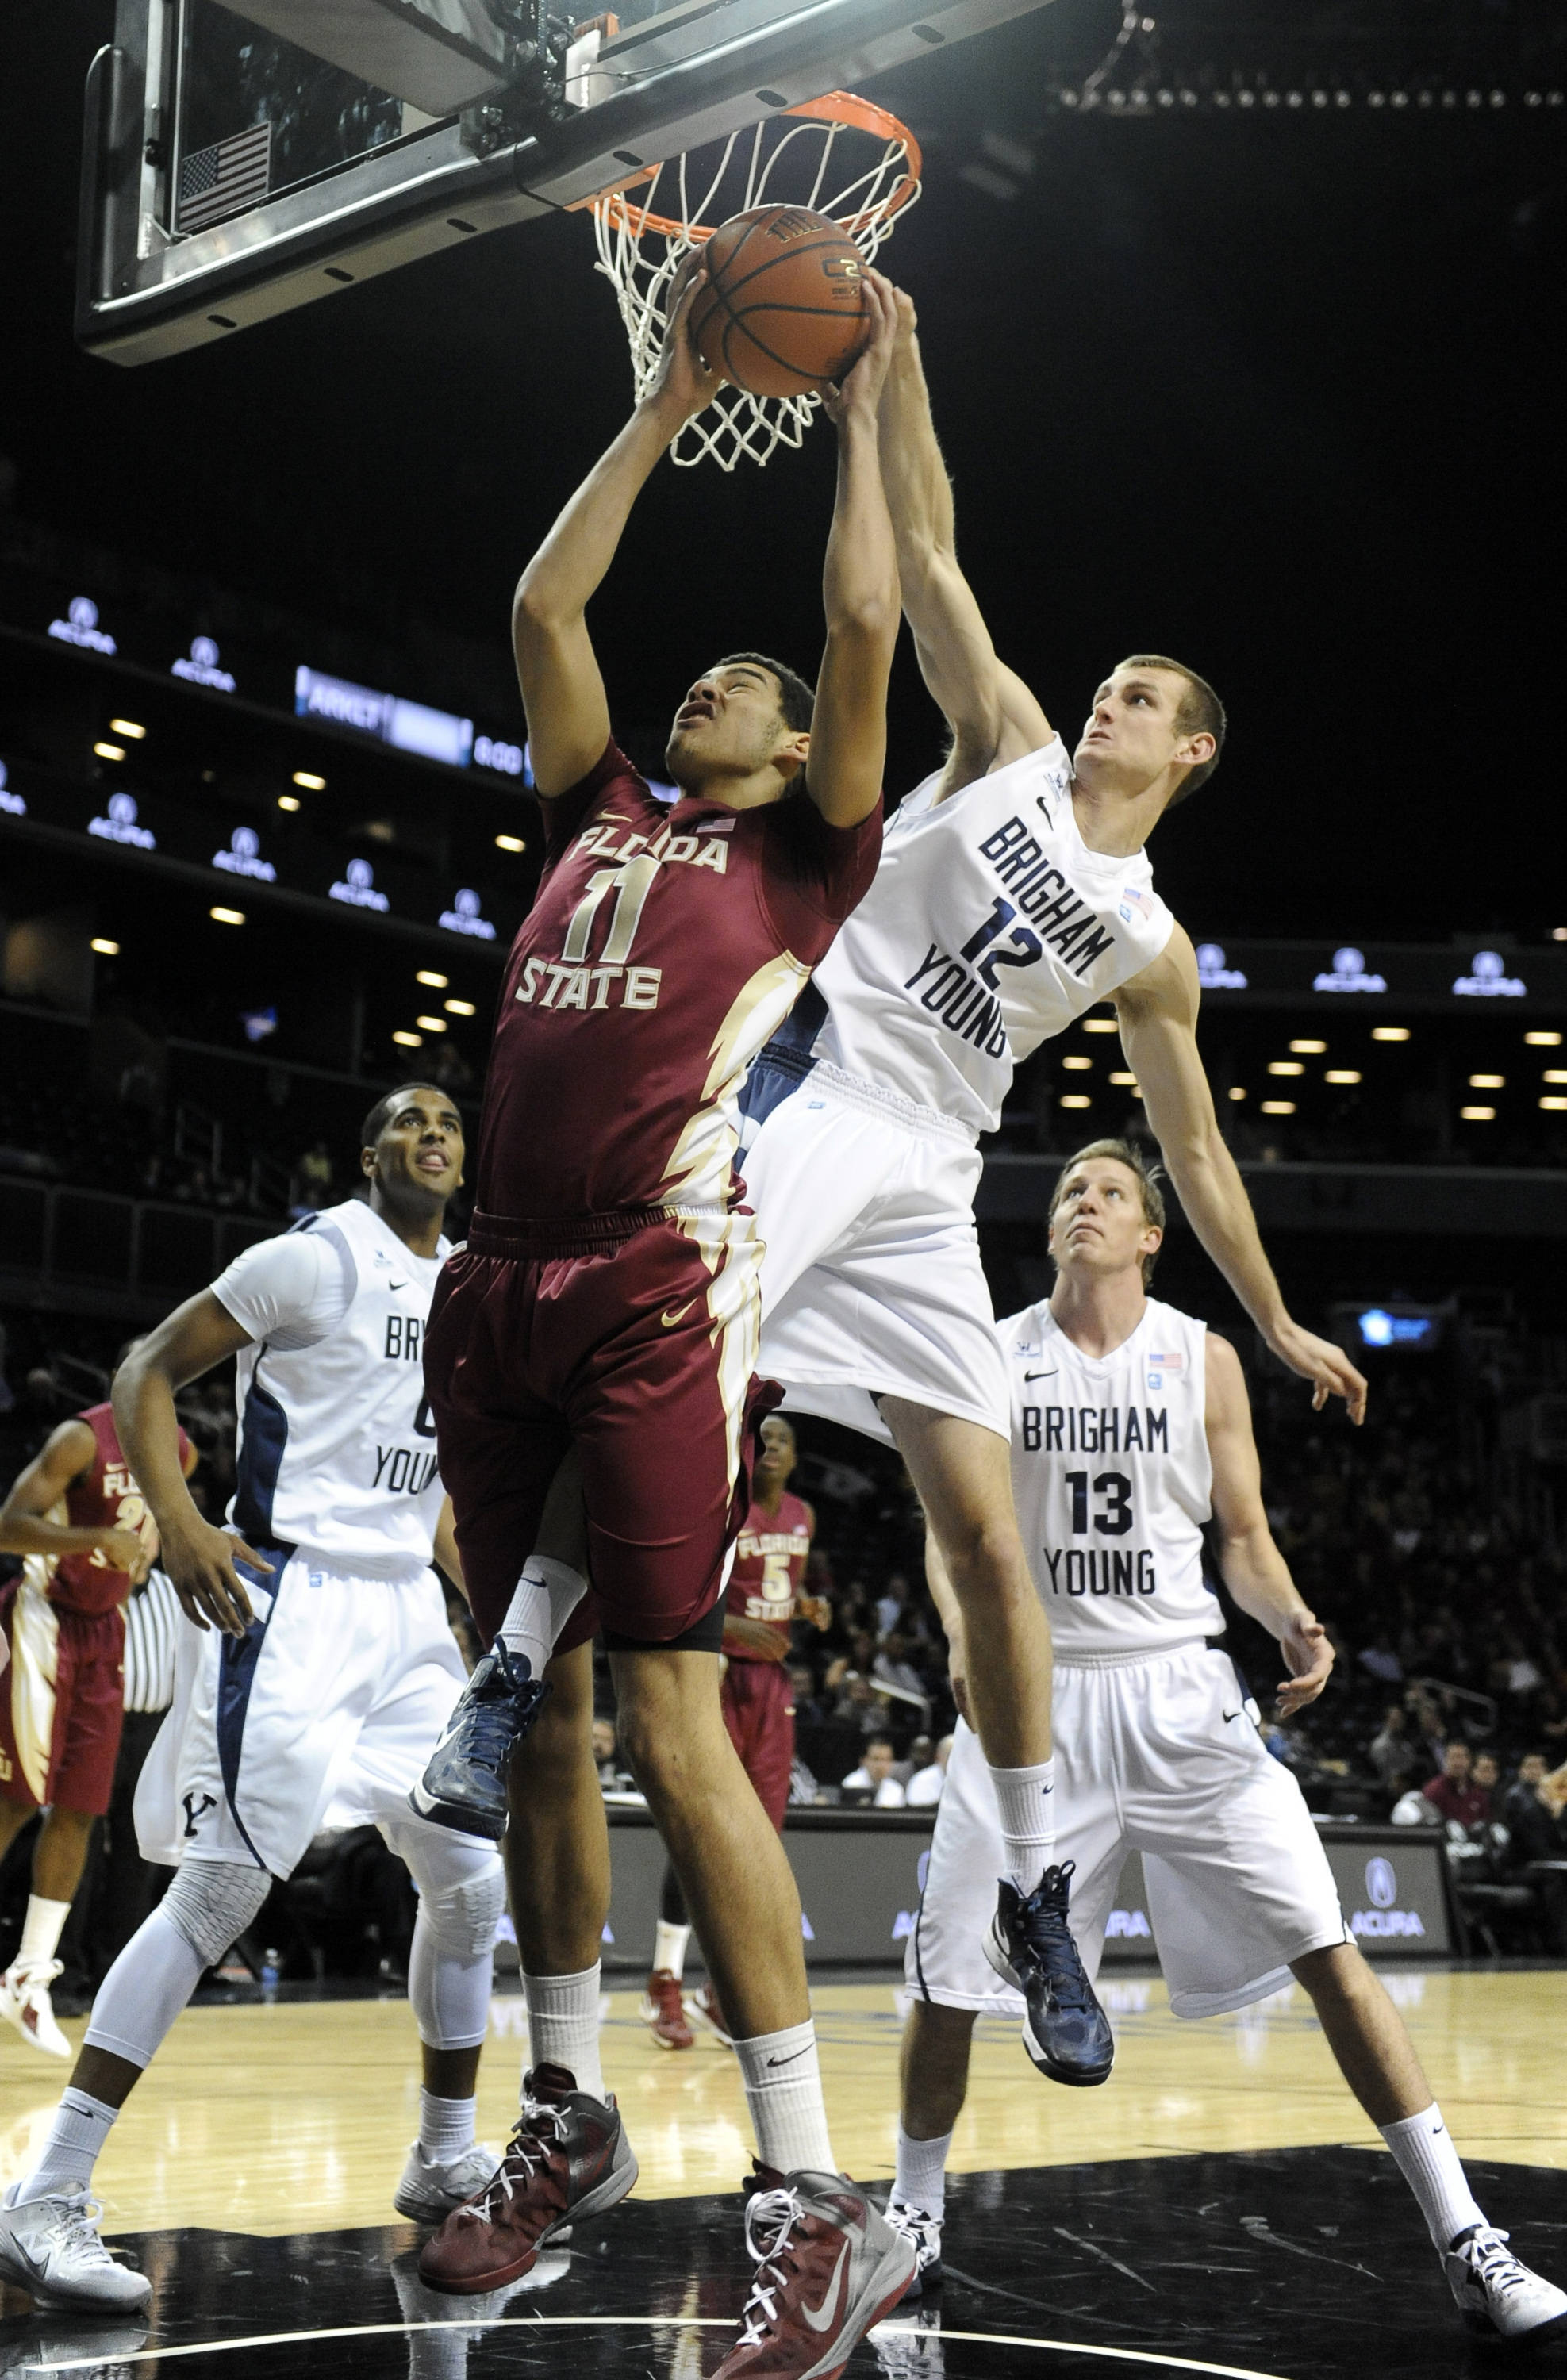 Florida State's Kiel Turpin (11) and Brigham Young's Josh Sharp (12) battle for a rebound in the first half. (AP Photo/Kathy Kmonicek)